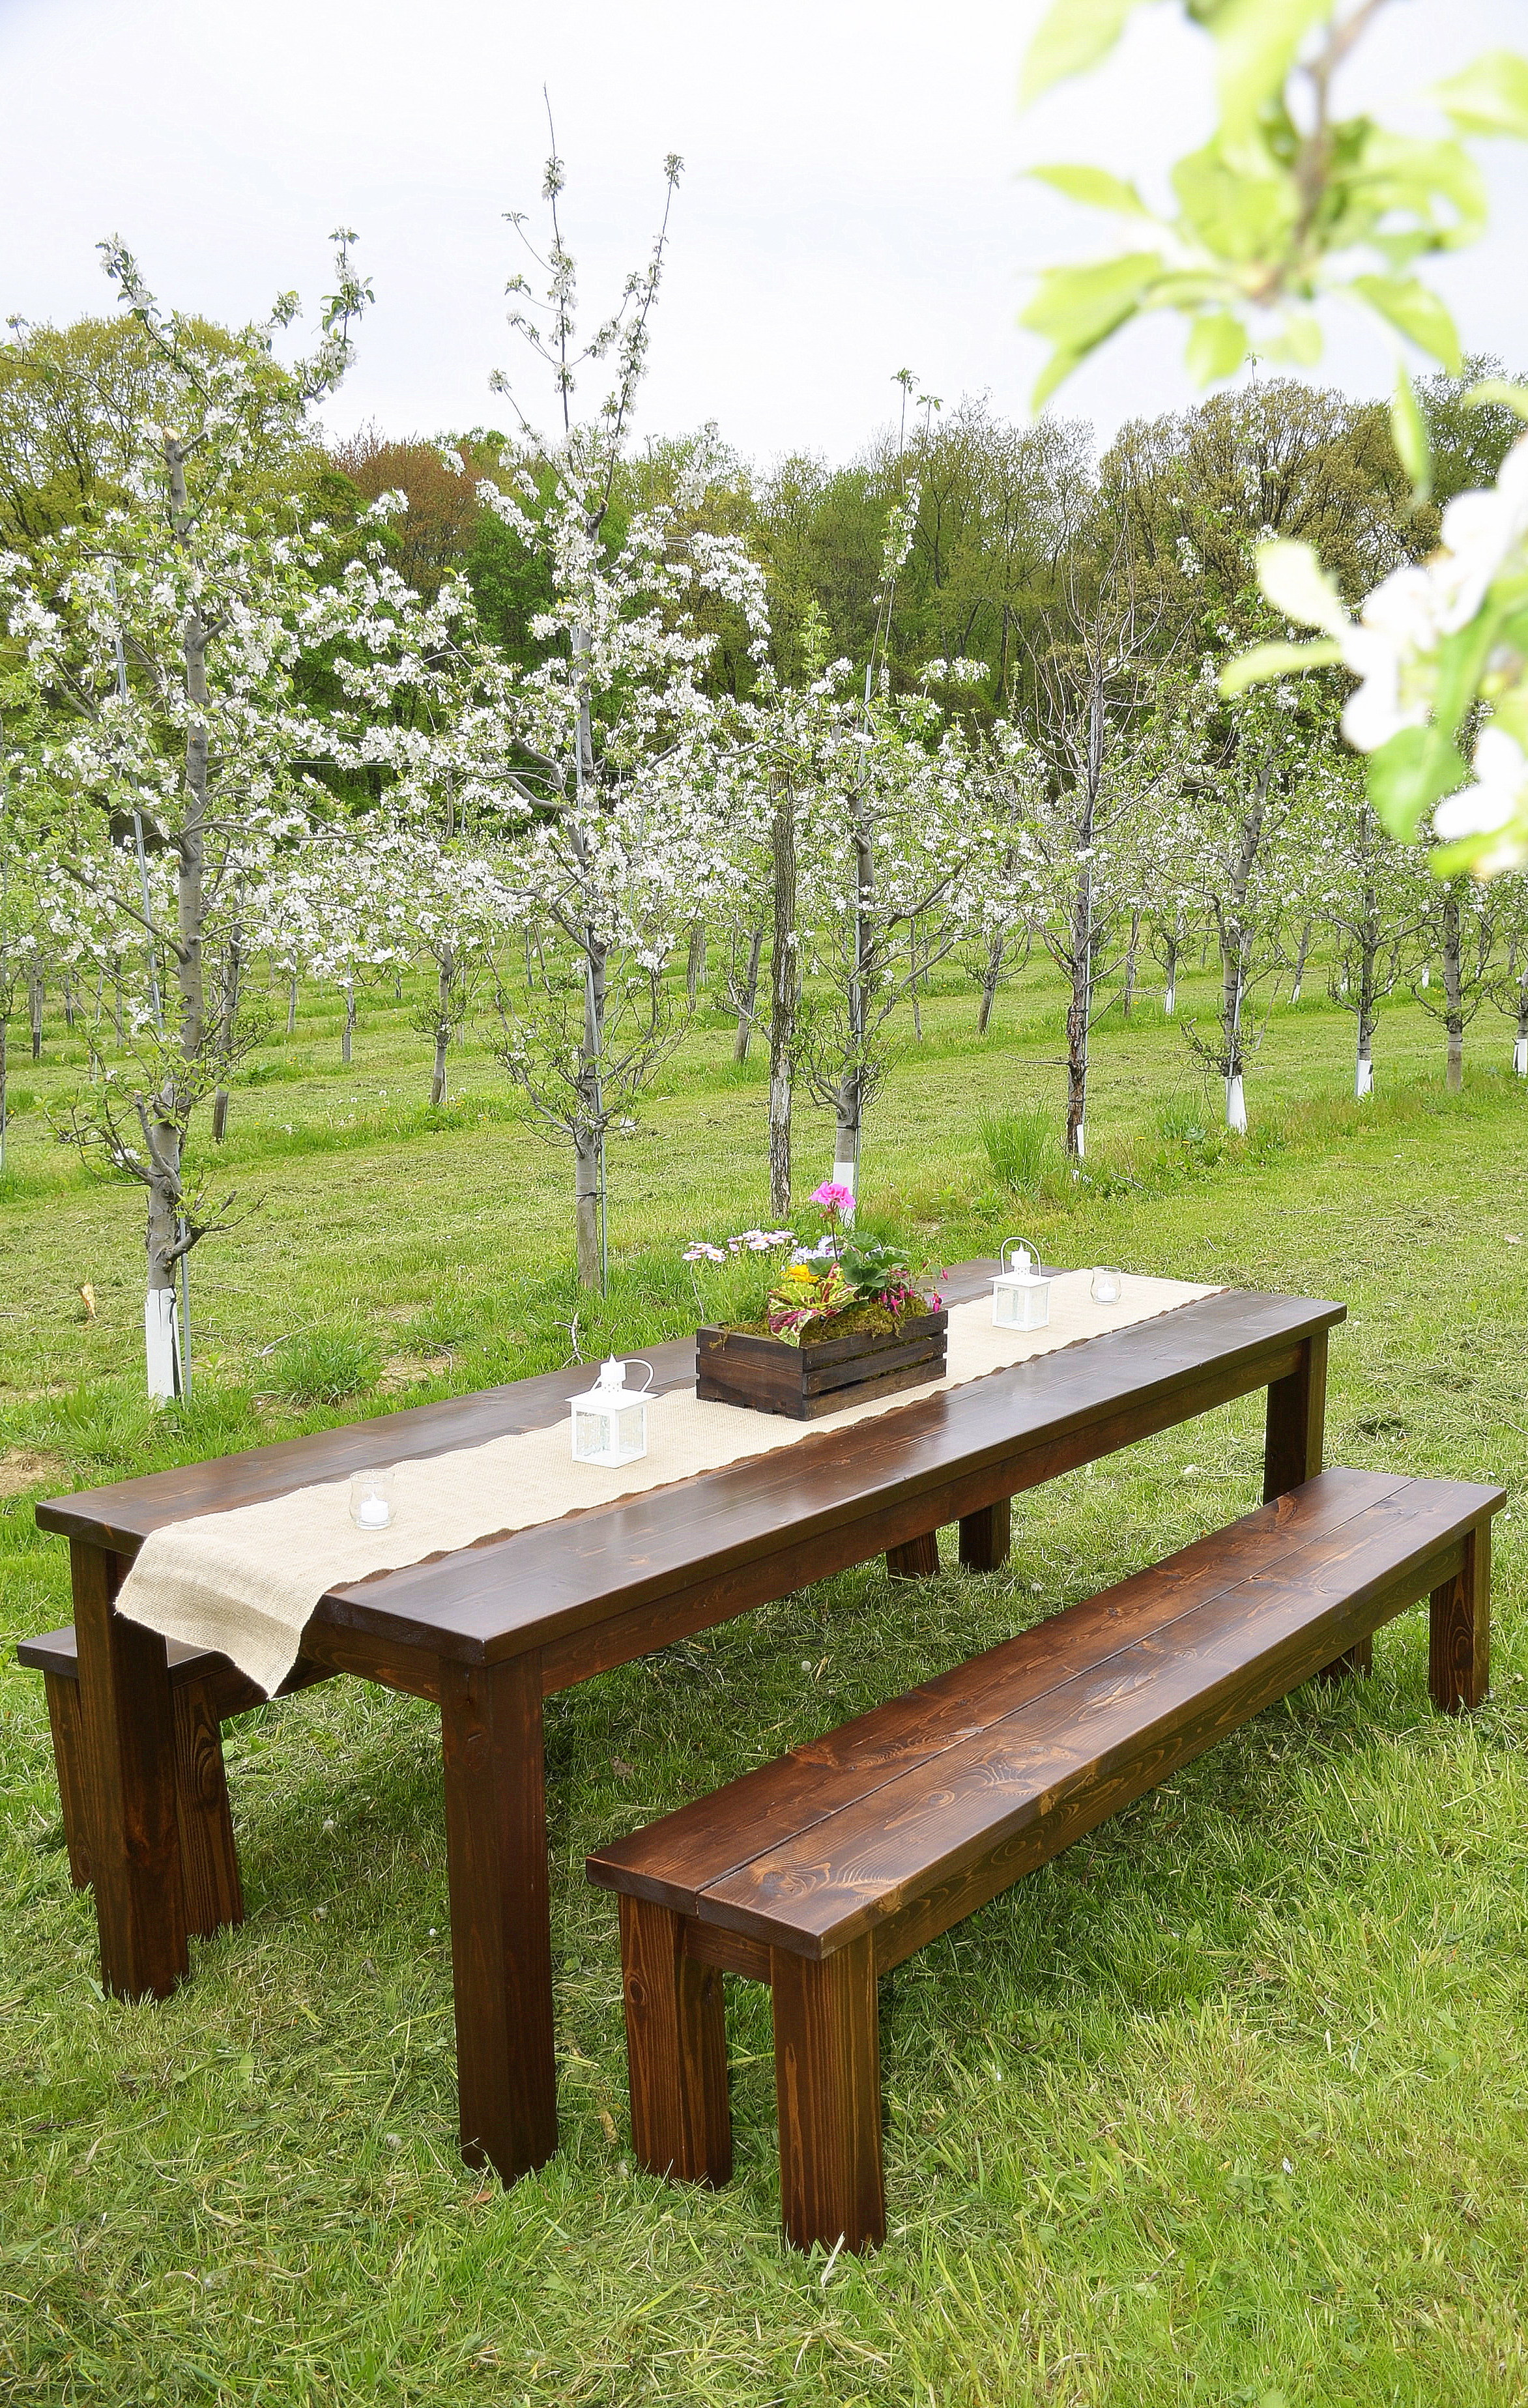 Penn Rustics Rentals - Apple Orchard Wedding Solid Wood Farmhouse Tables, Cocktail Tables, Sweetheart Tables, Wood Ceremony Bench for rent Pittsburgh